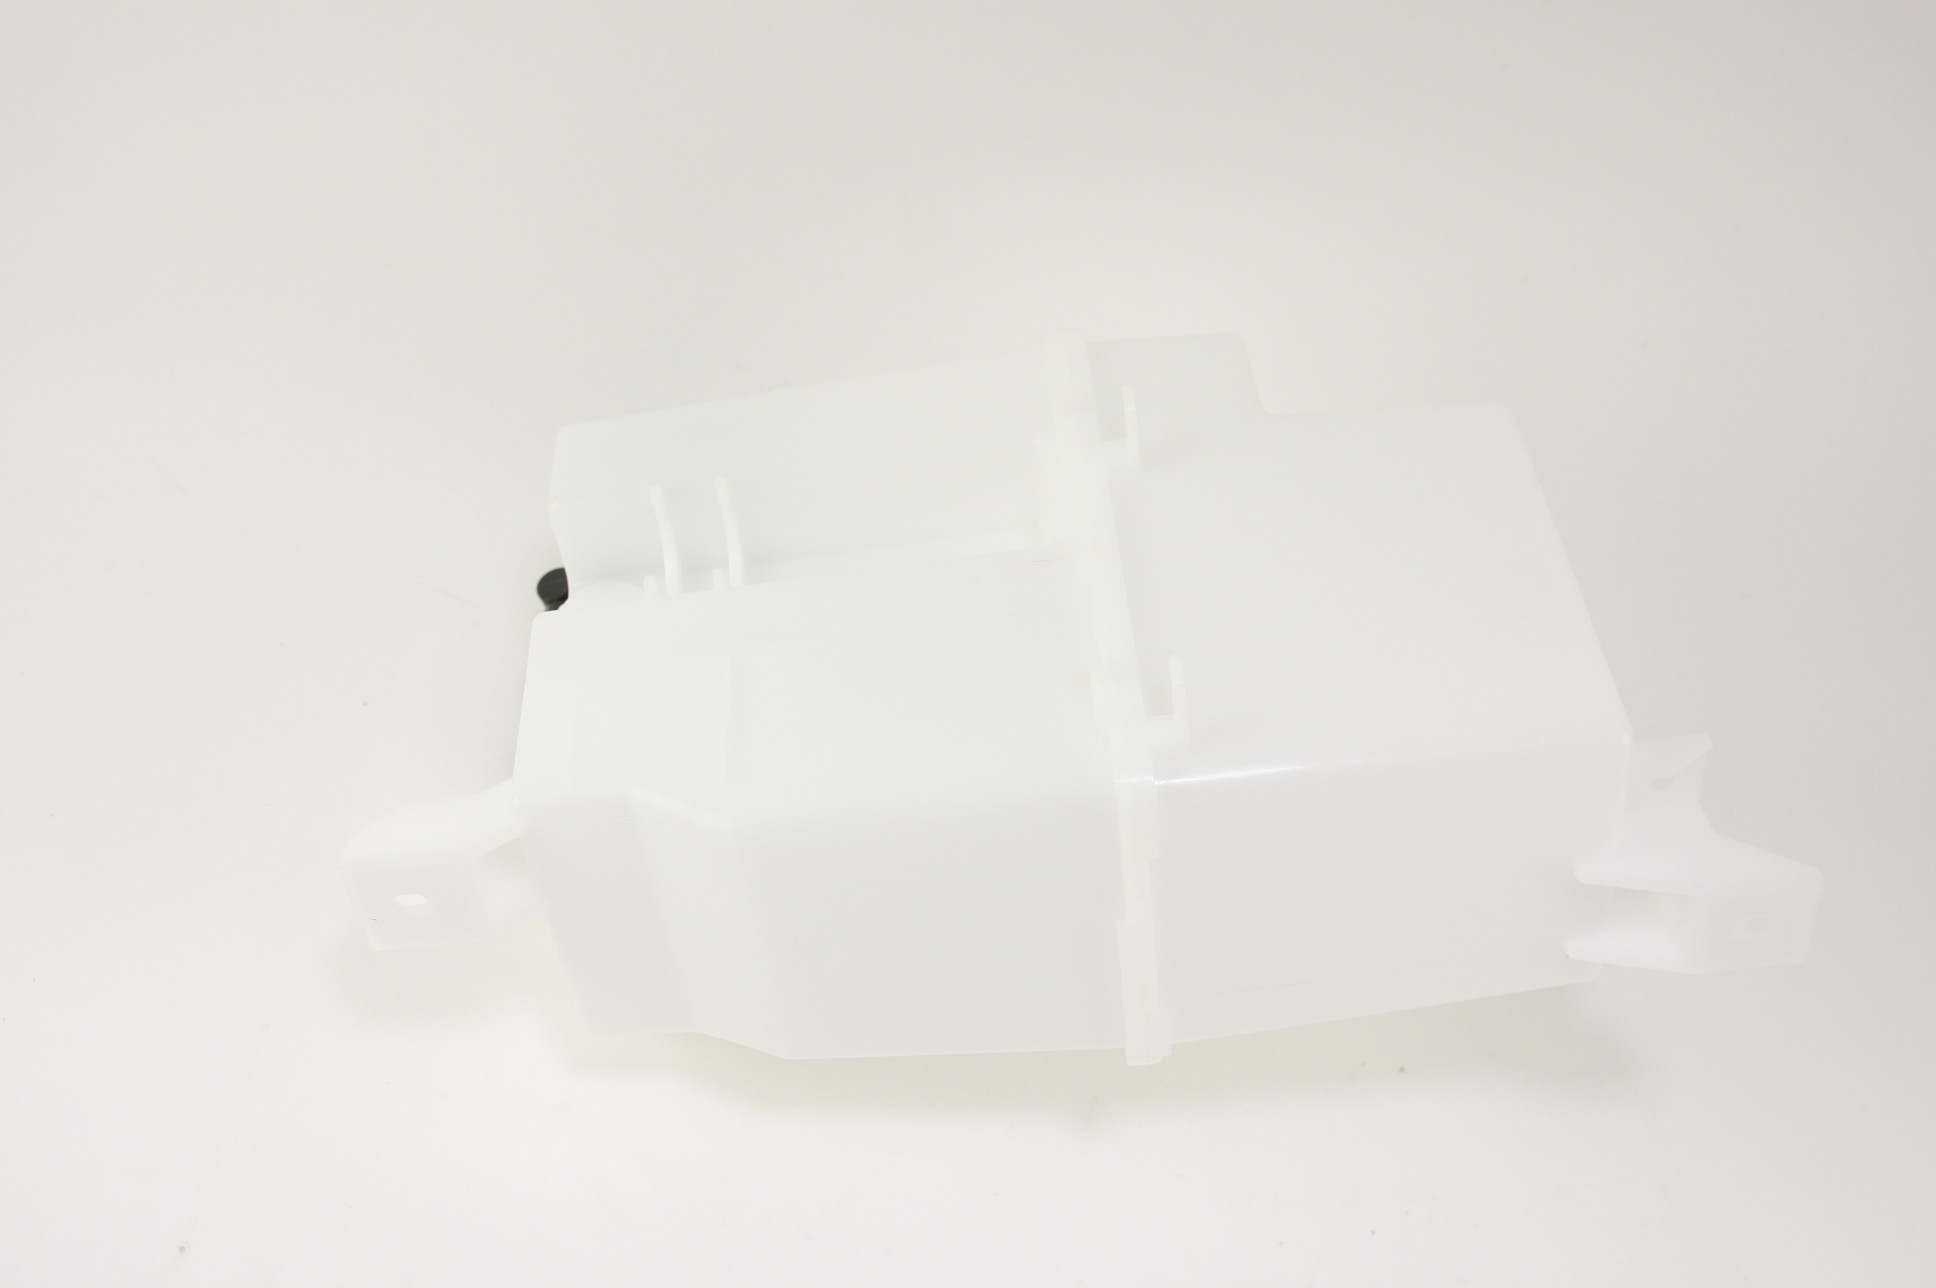 New OEM 28910-4BA5A Nissan 14-16 Rogue Windshield Washer Fluid Reservoir Tank - image 9